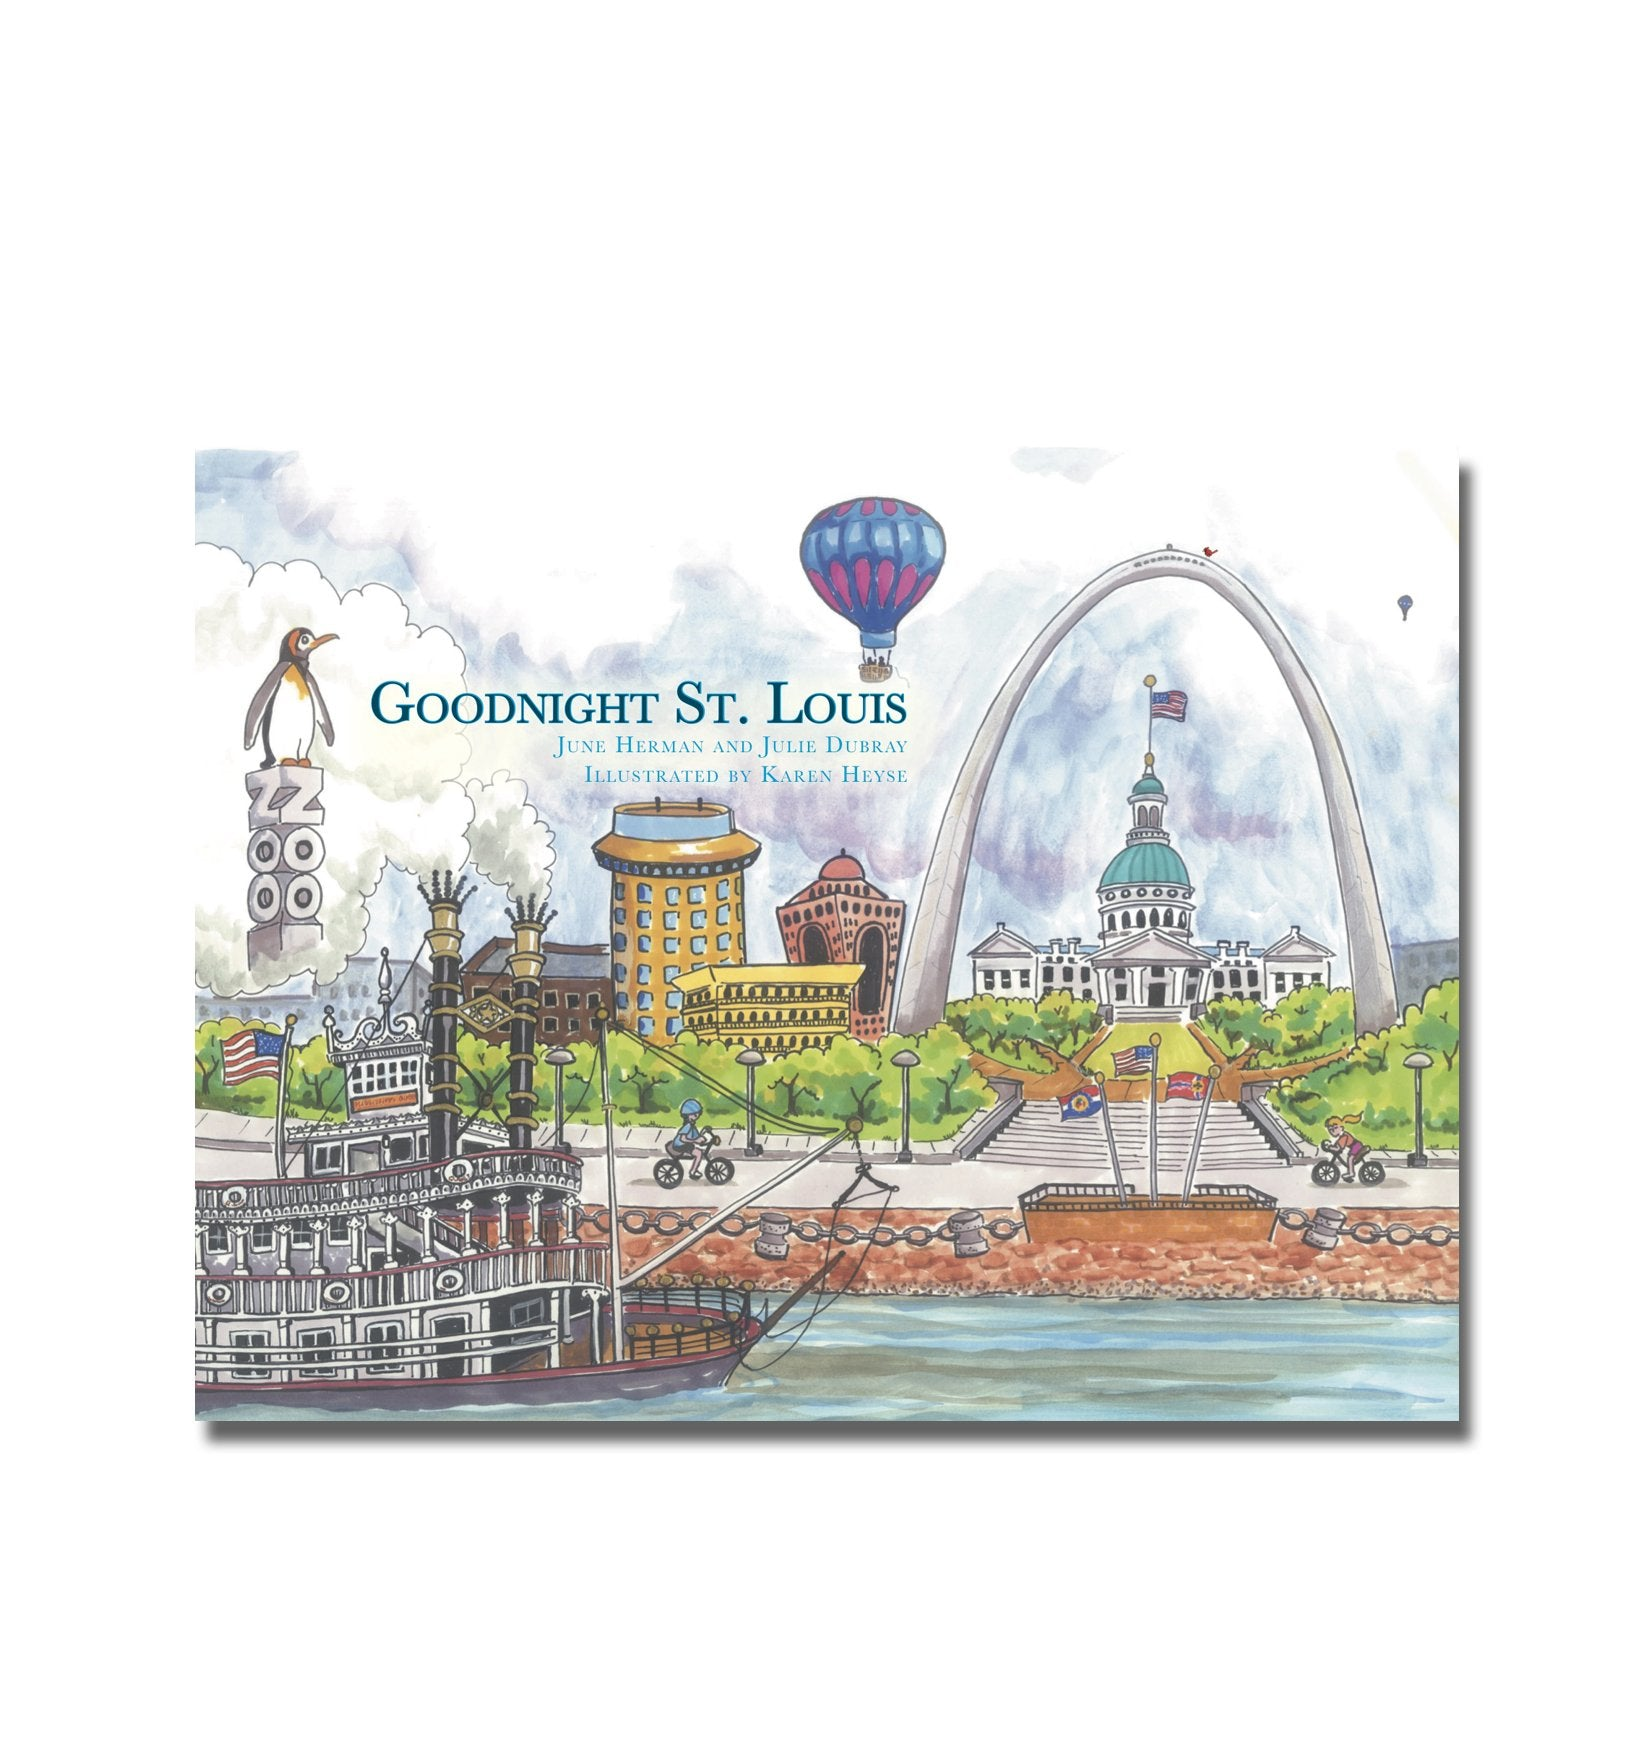 Goodnight St. Louis Hardcover Book